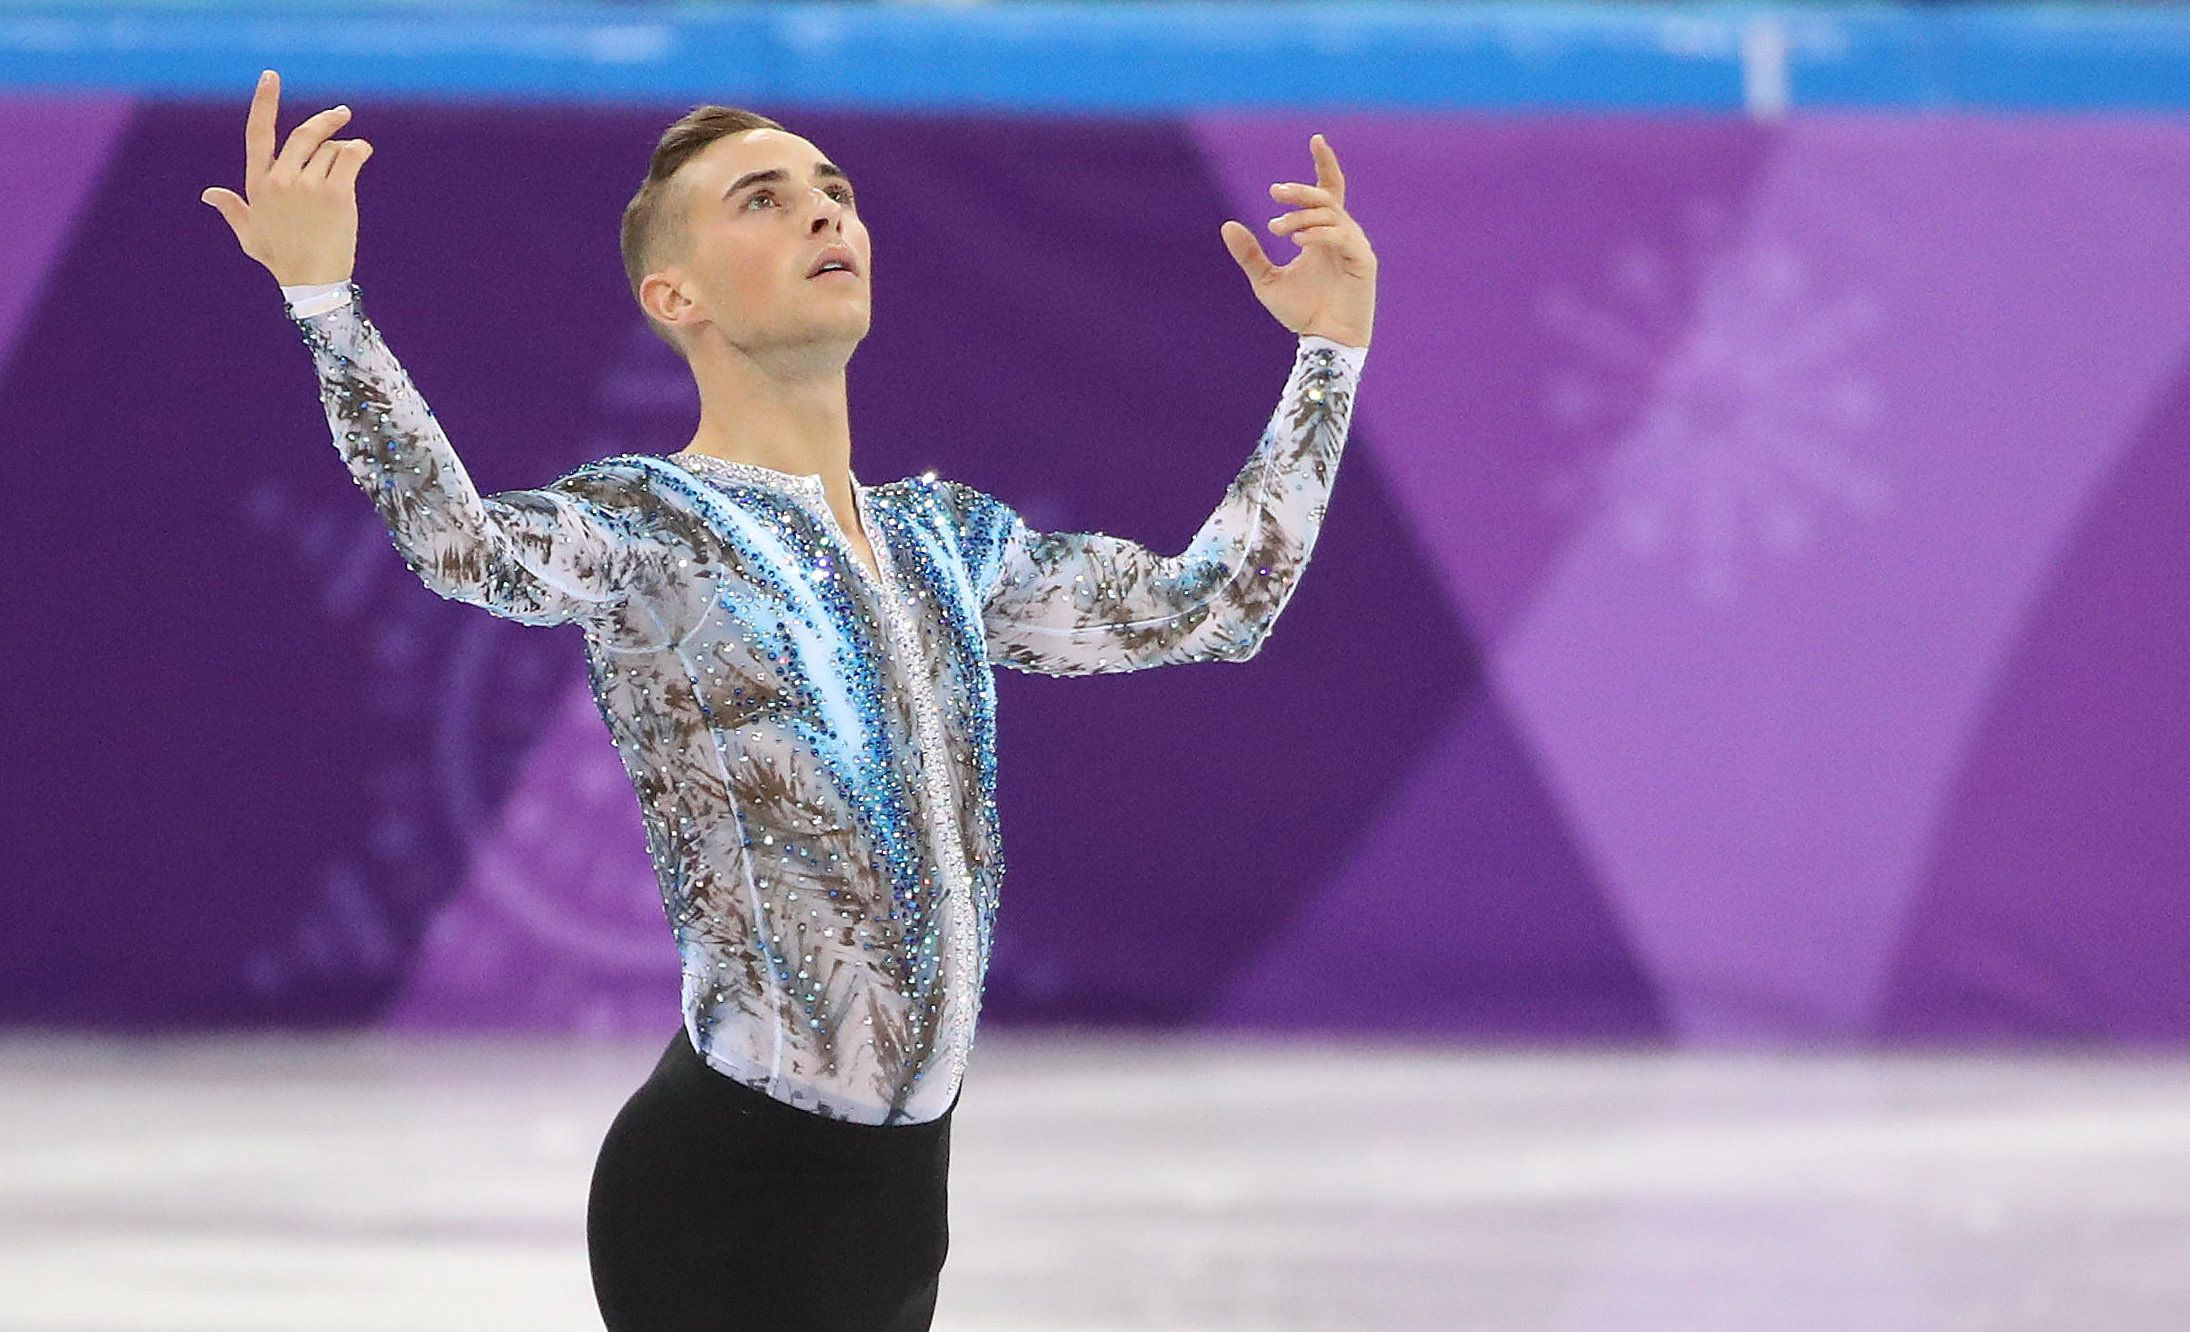 GANGNEUNG, Pyeongchang- FEBRUARY 11  - Adam Rippon of the United States in the team competition at the PyeongChang 2018 Winter Olympics Figure Skating competition  at the Gangneung Ice Arena  at the 2018 Pyeongchang Winter Olympics  in Gangneung in Pyeongchang in South Korea. February 11, 2018.        (Steve Russell/Toronto Star via Getty Images)